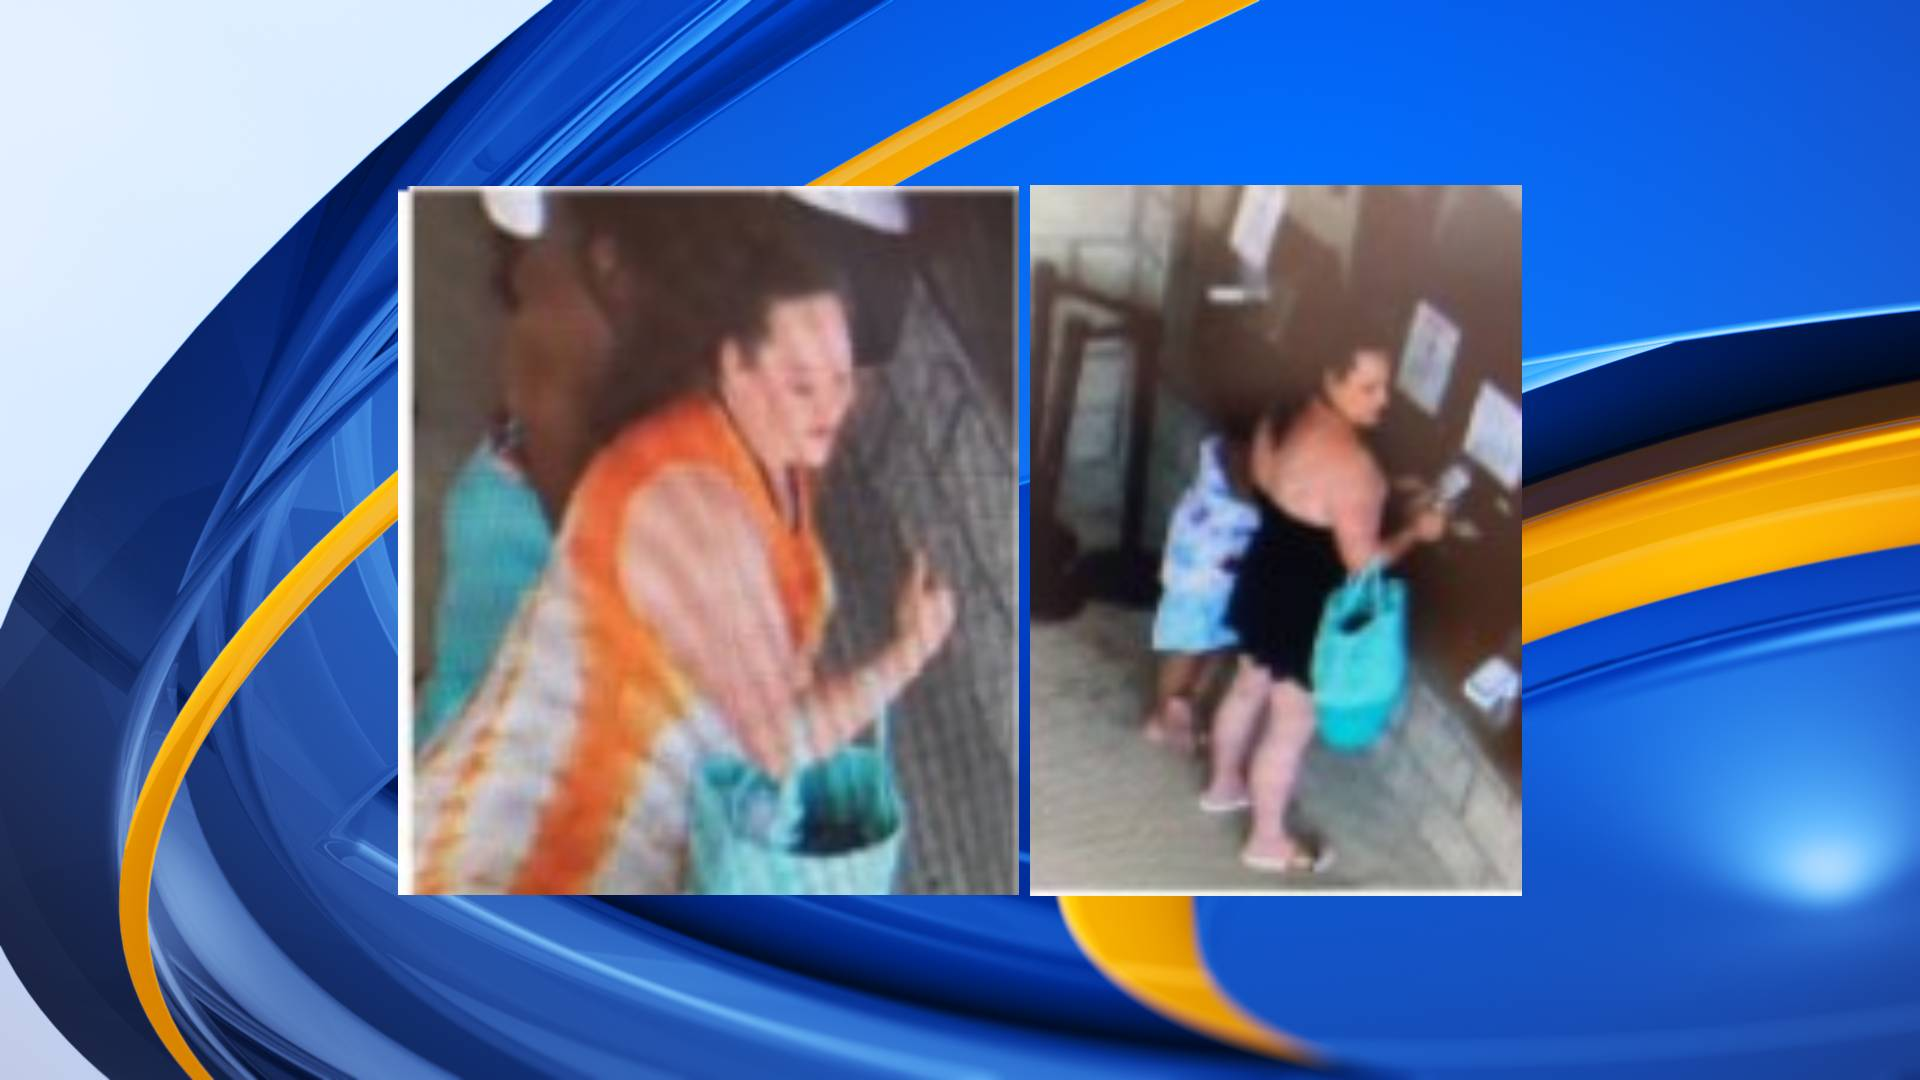 Woman sought in connection to theft at Greenwood aquatic park